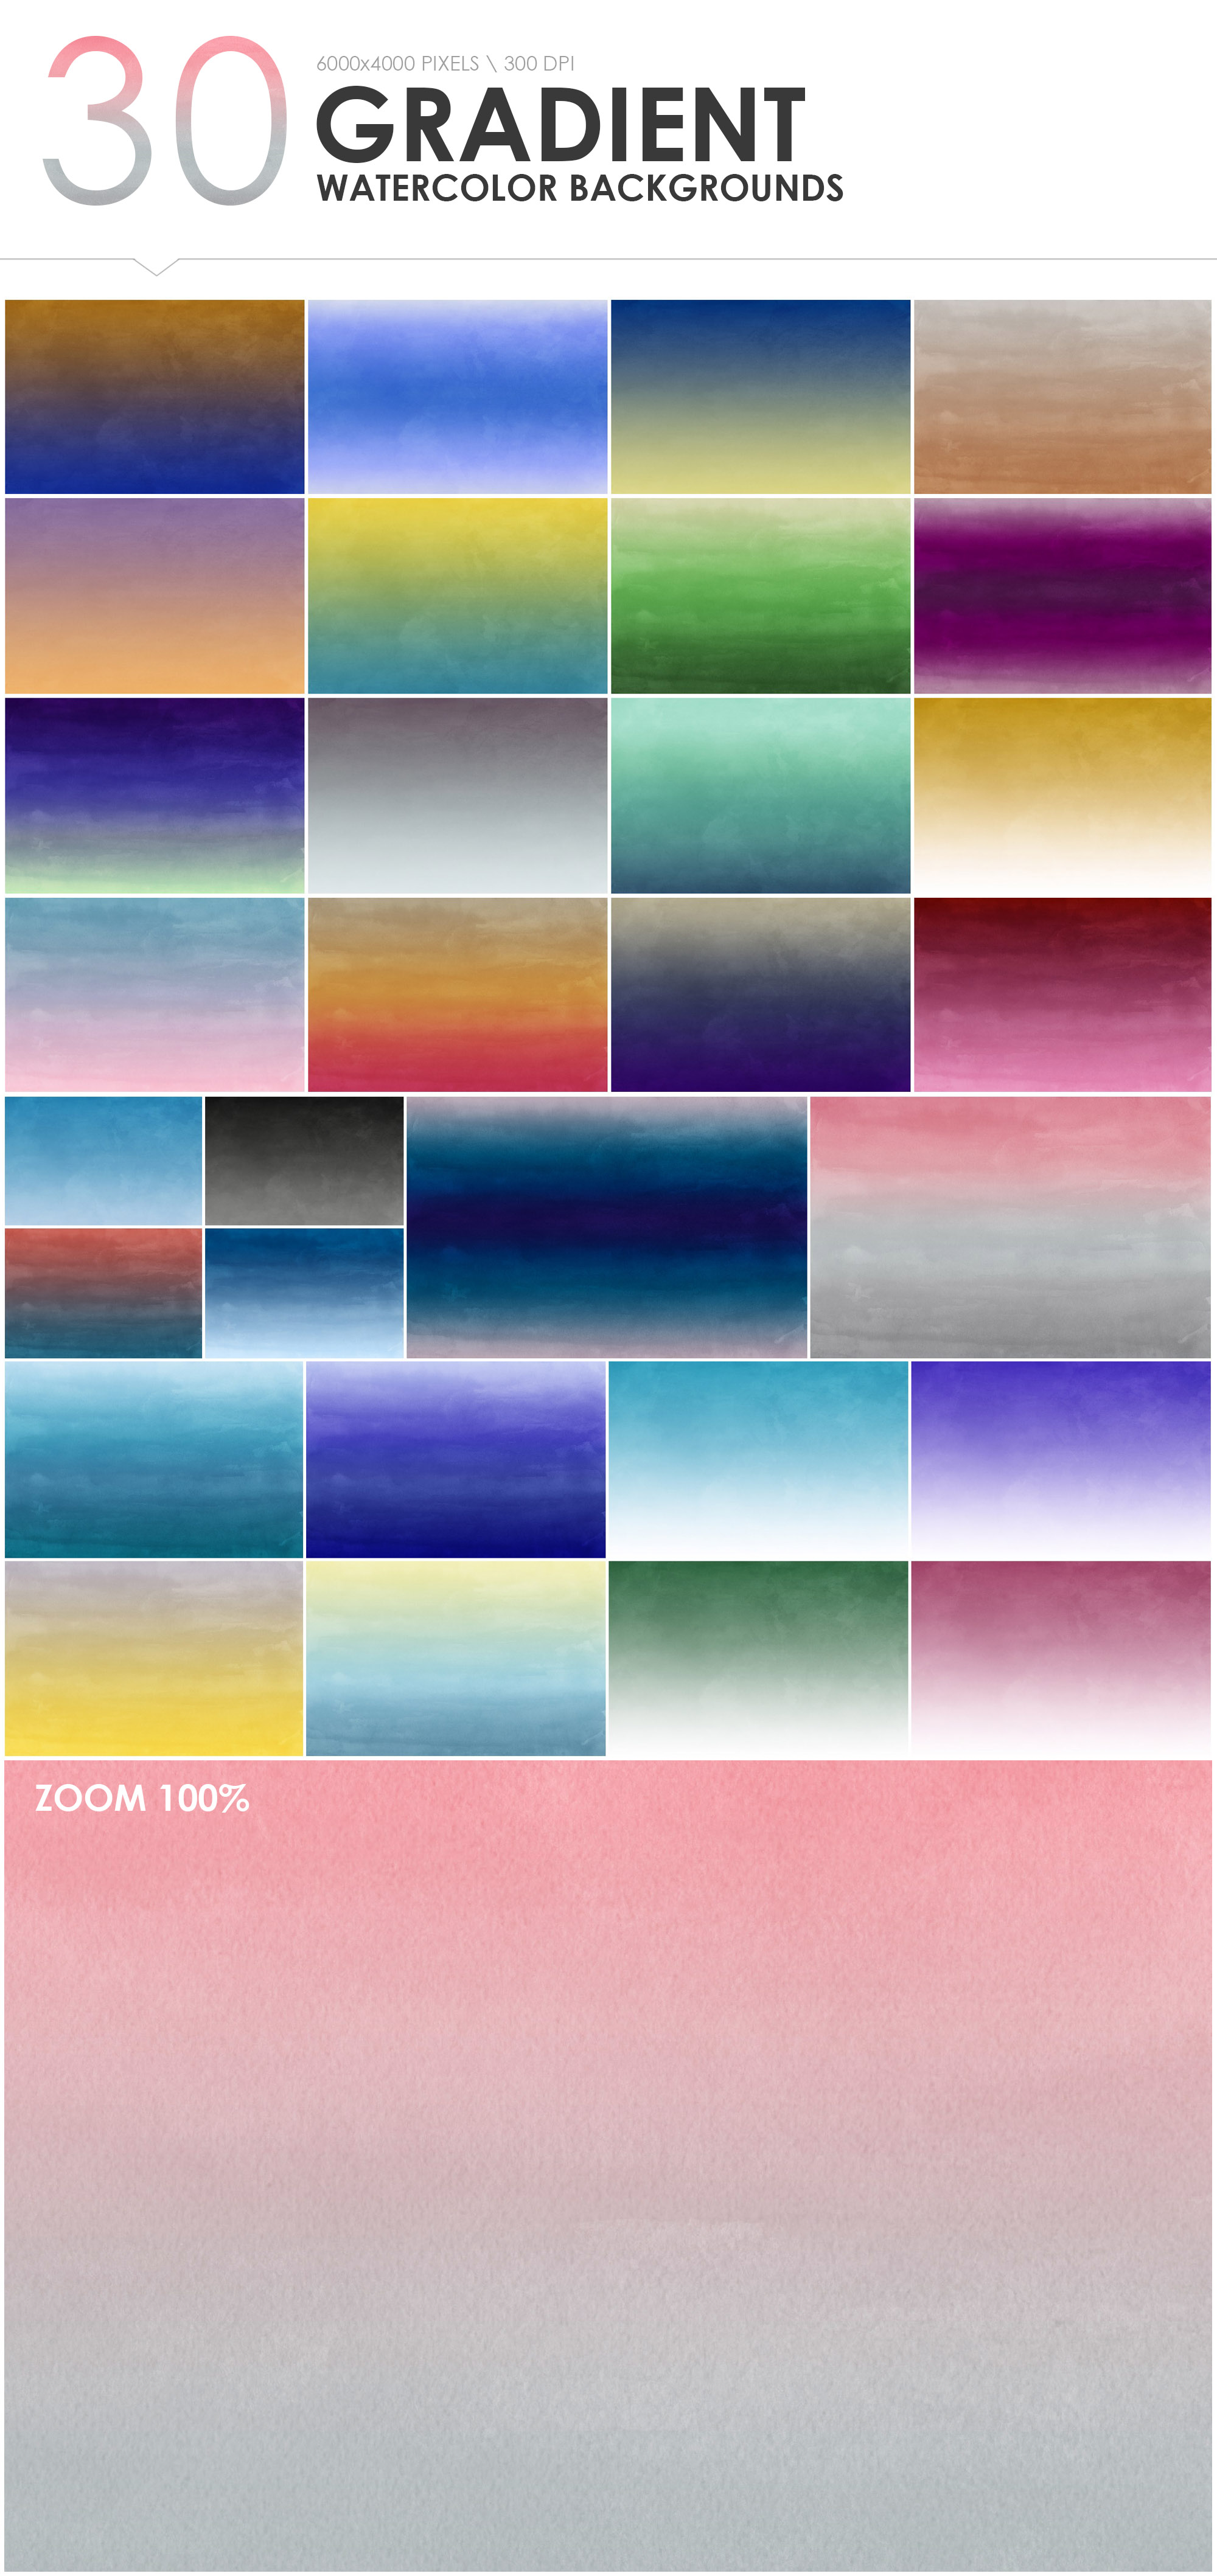 300 Diverse Watercolor Backgrounds example image 7